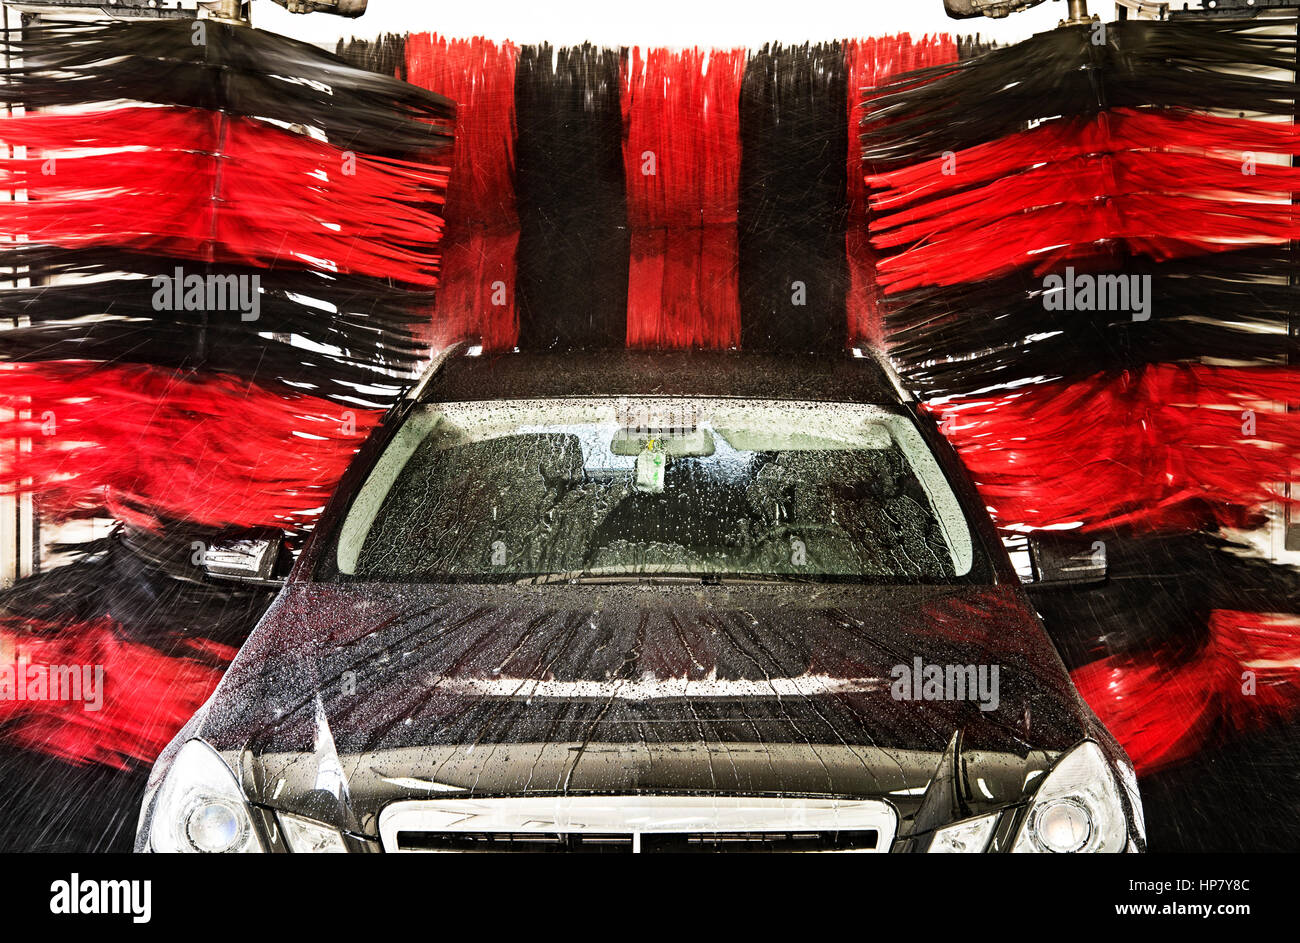 A black car is cleaned in a Gantry car wash. - Stock Image